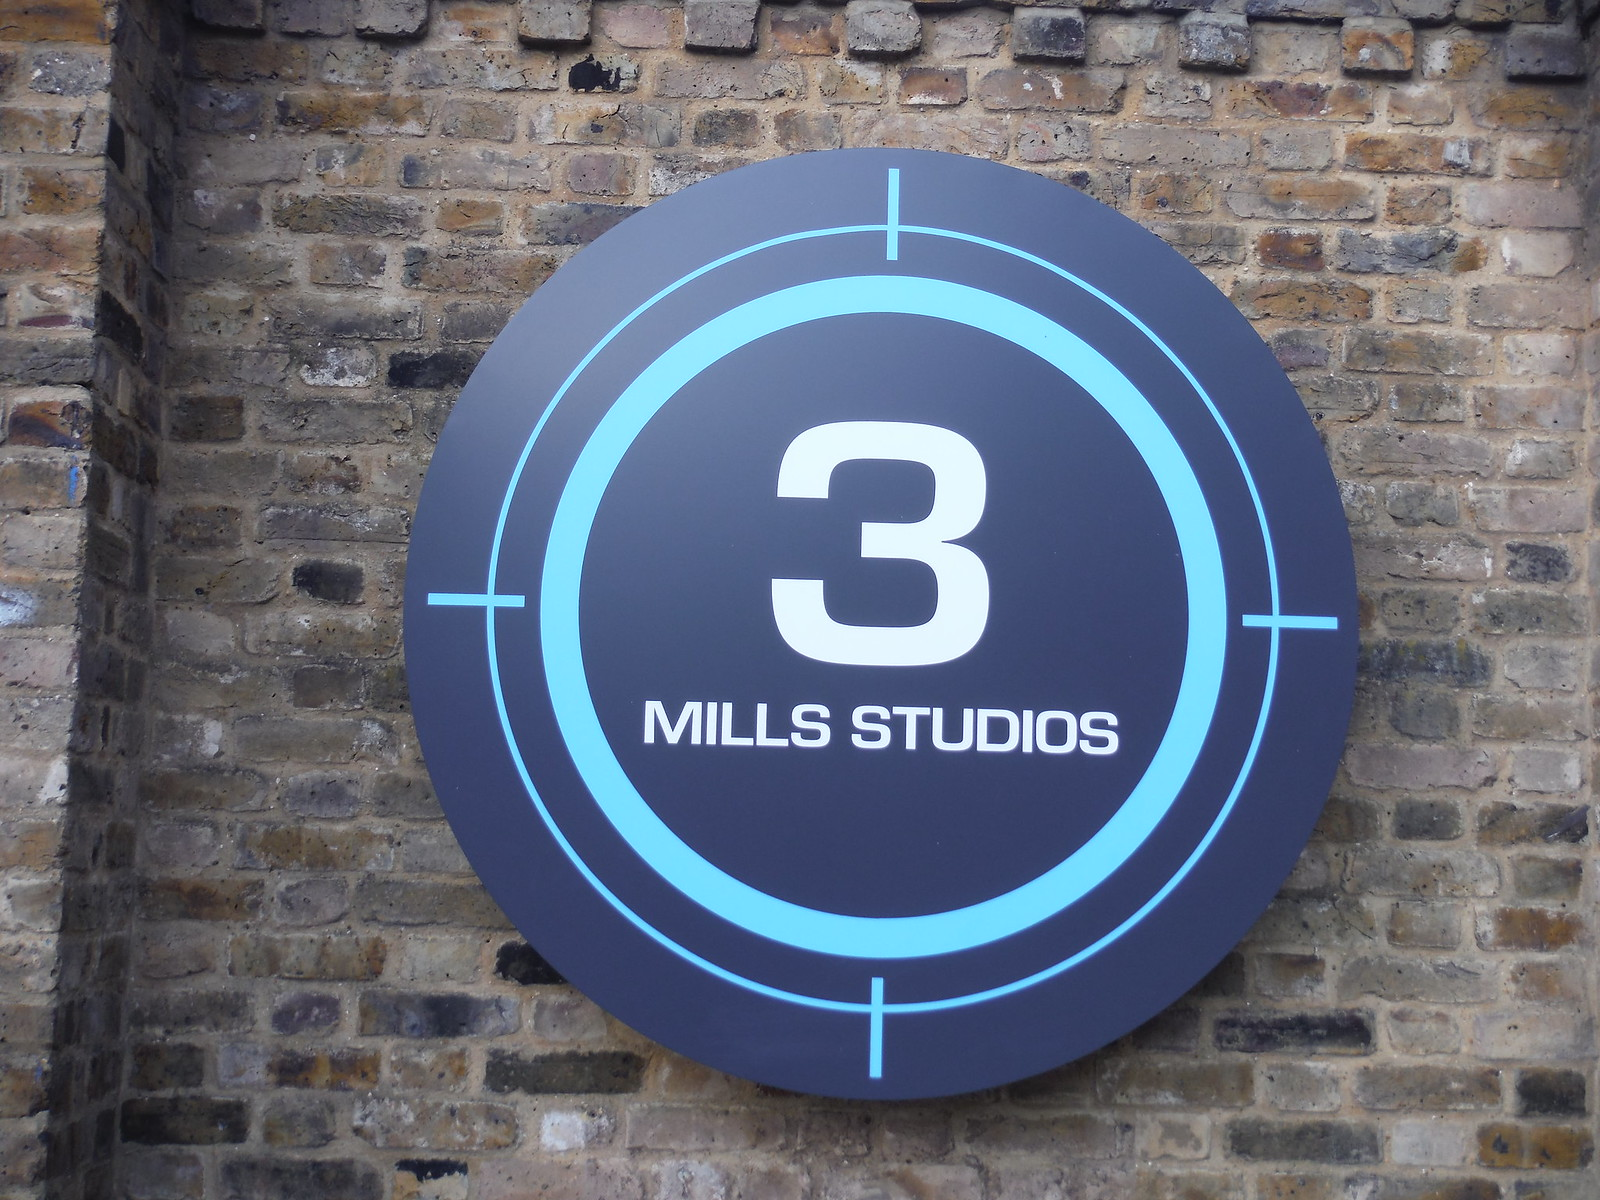 Three Mills Studios SWC Short Walk 21 - The Line Modern Art Walk (Stratford to North Greenwich)